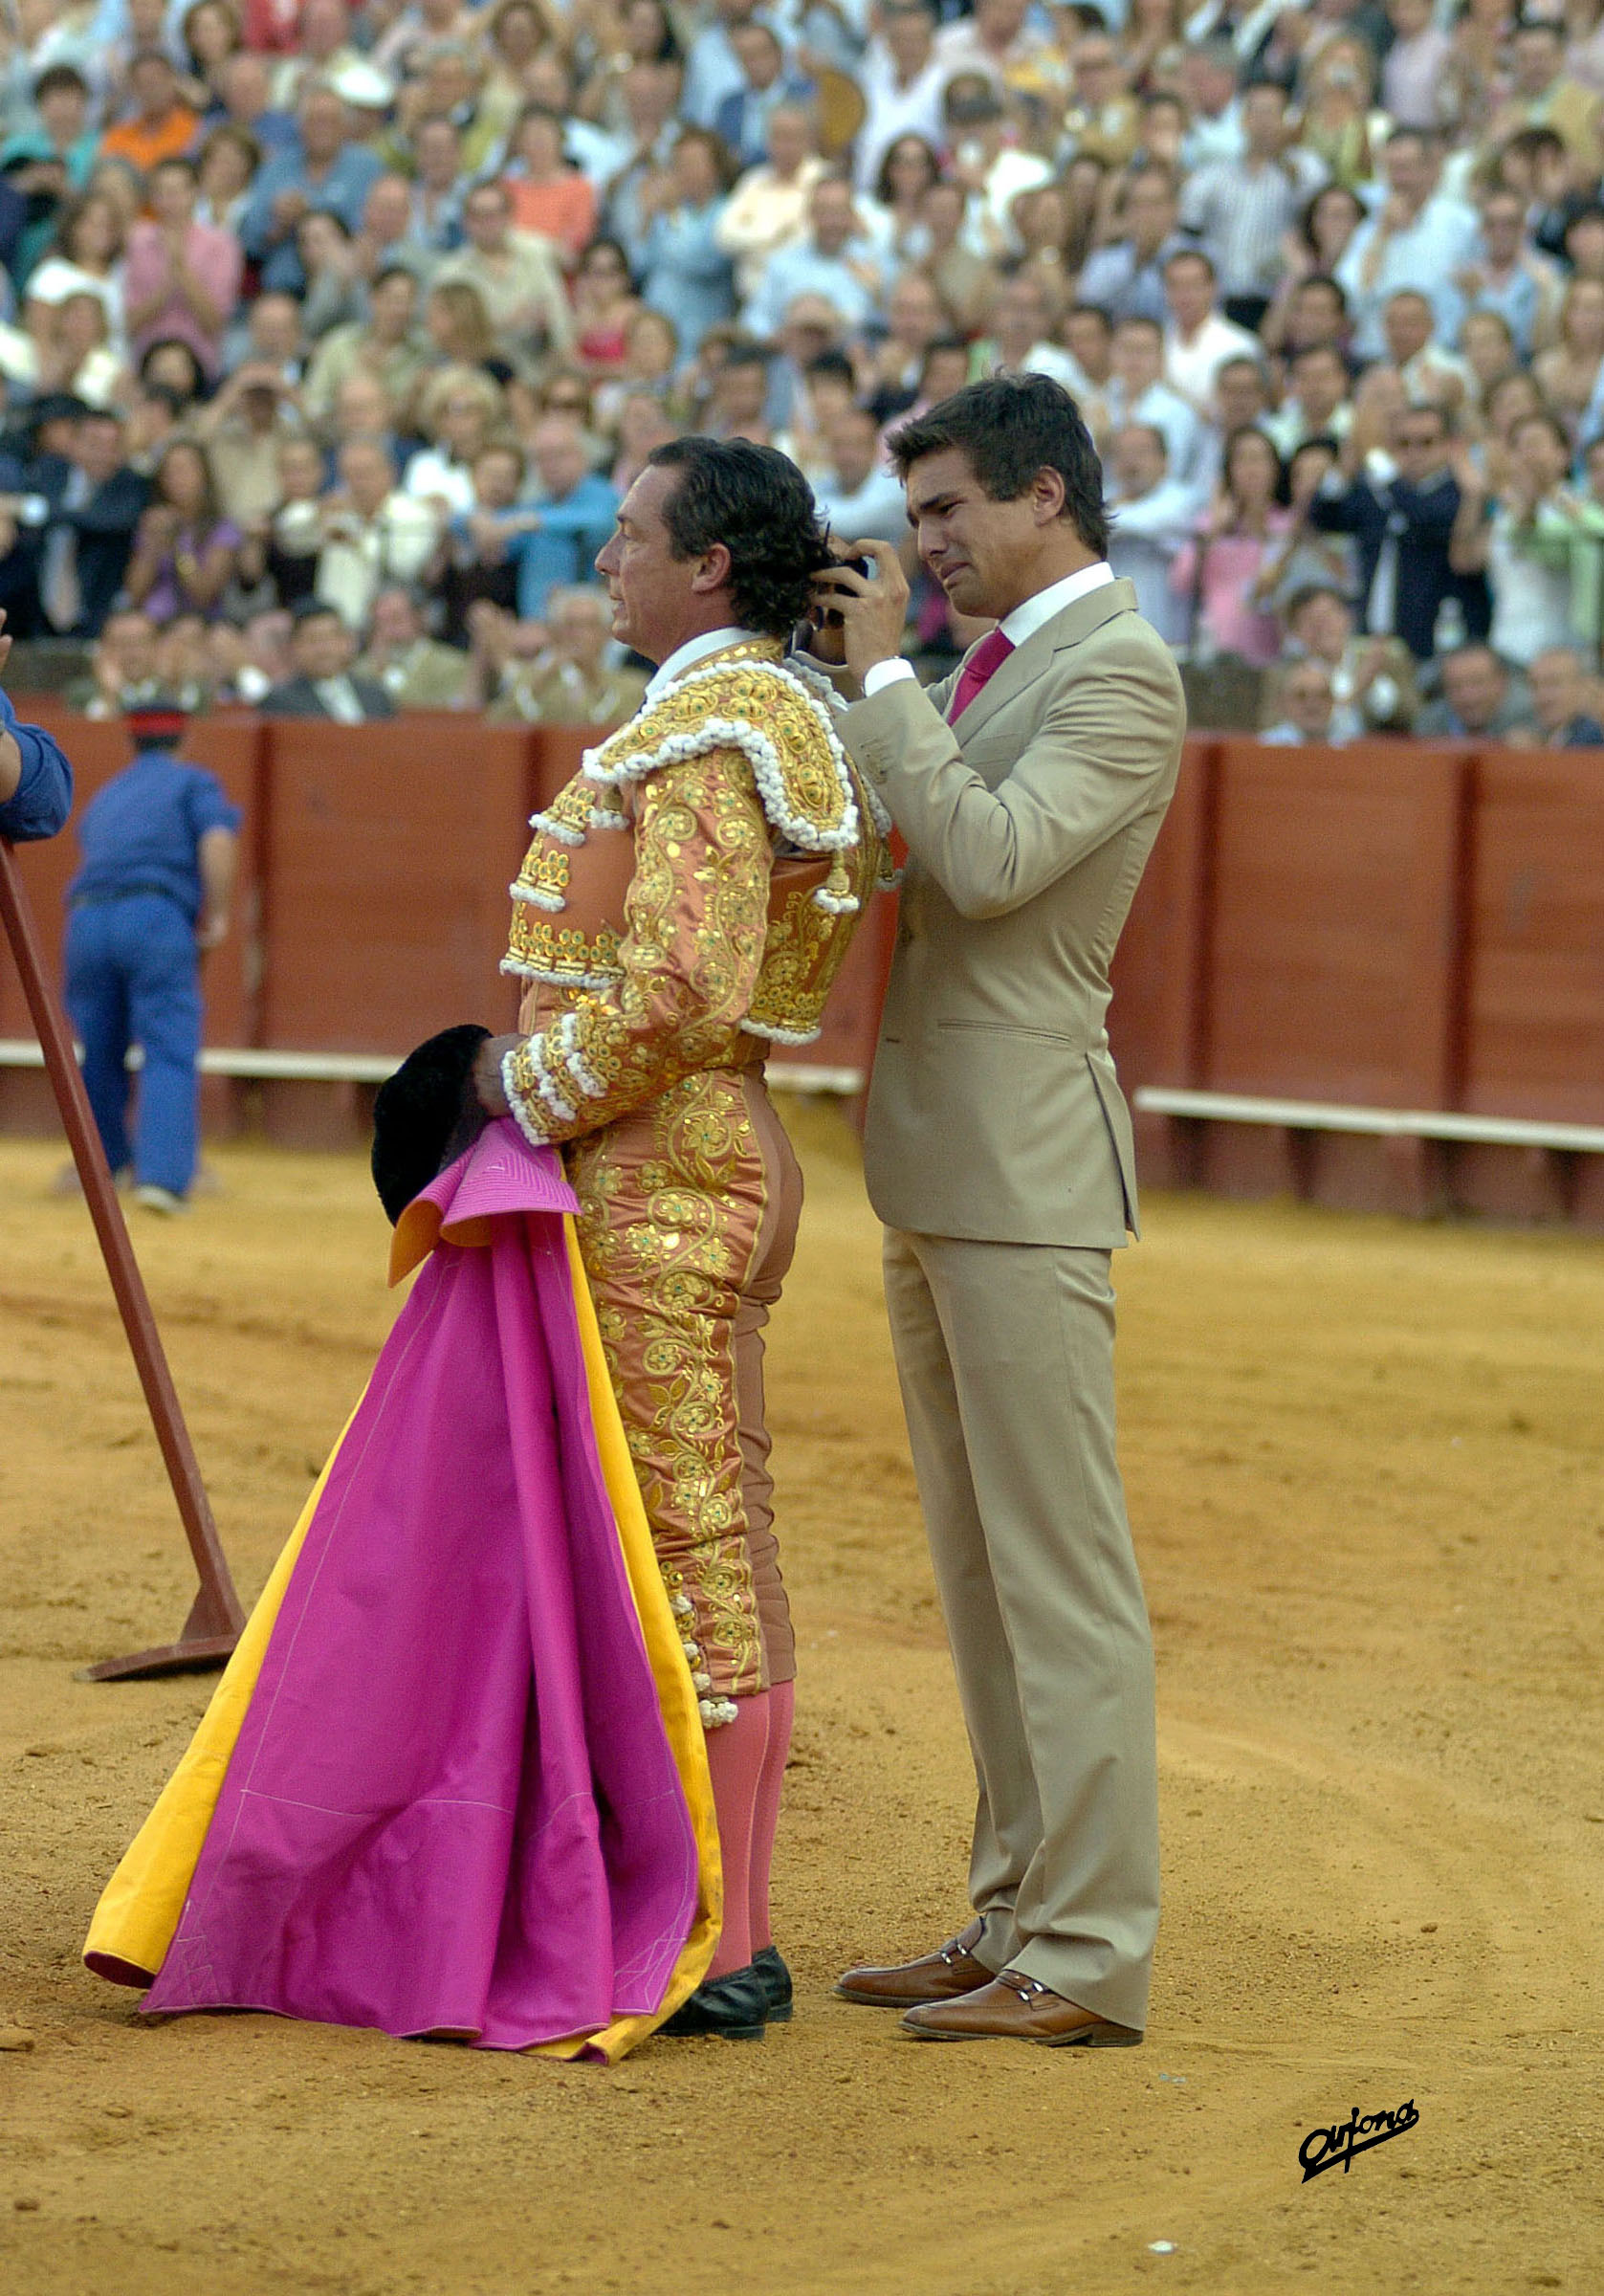 Jose Maria Manzanares Bullfighter